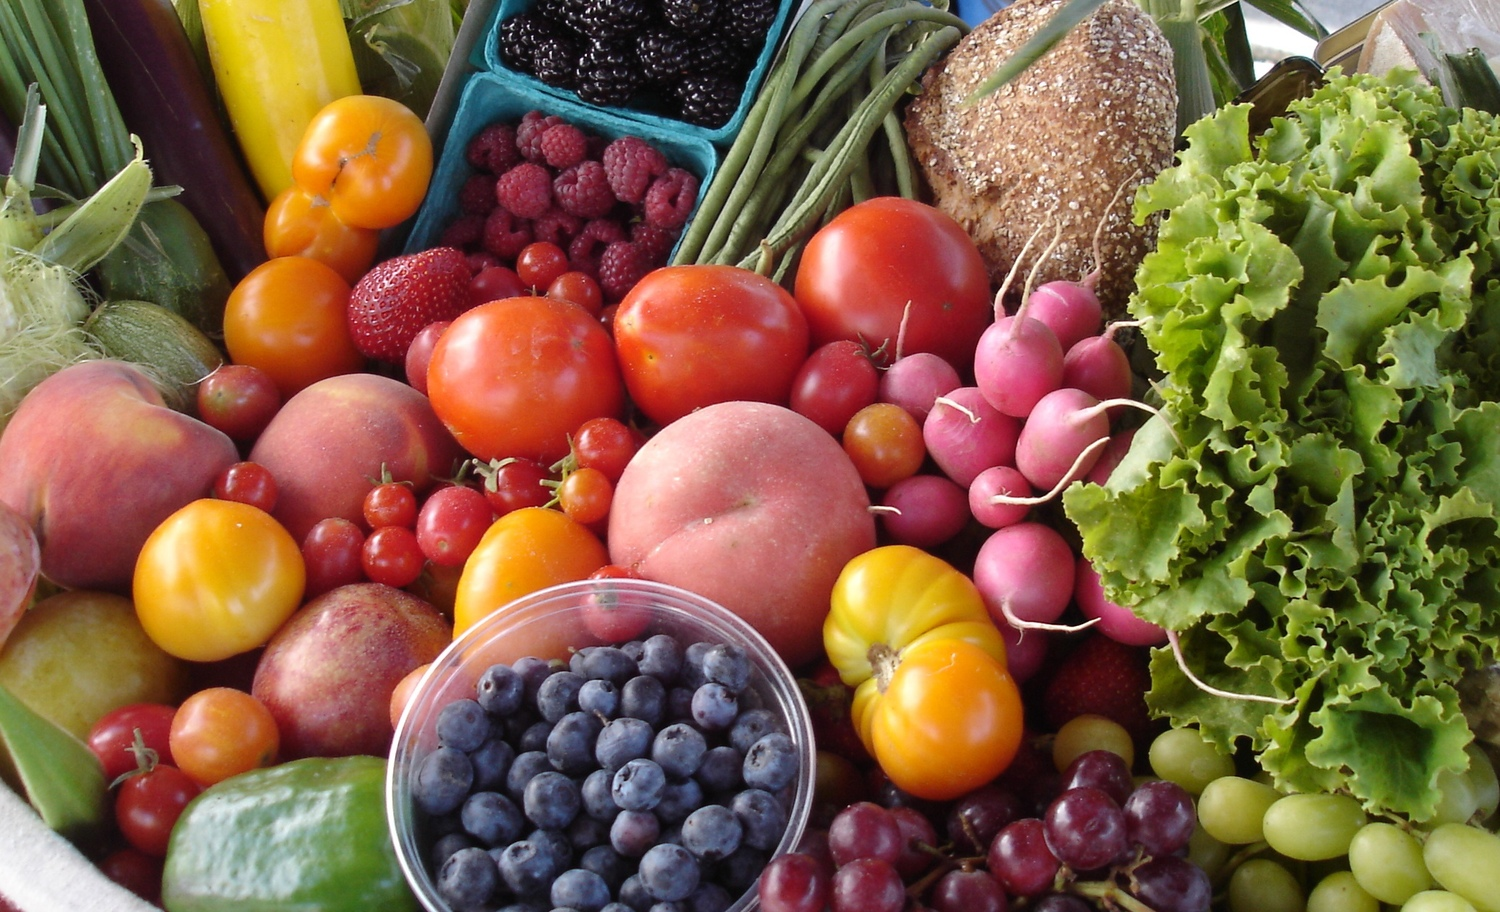 farmers market vancouver - blueberries - radishes - peaches - strawberries